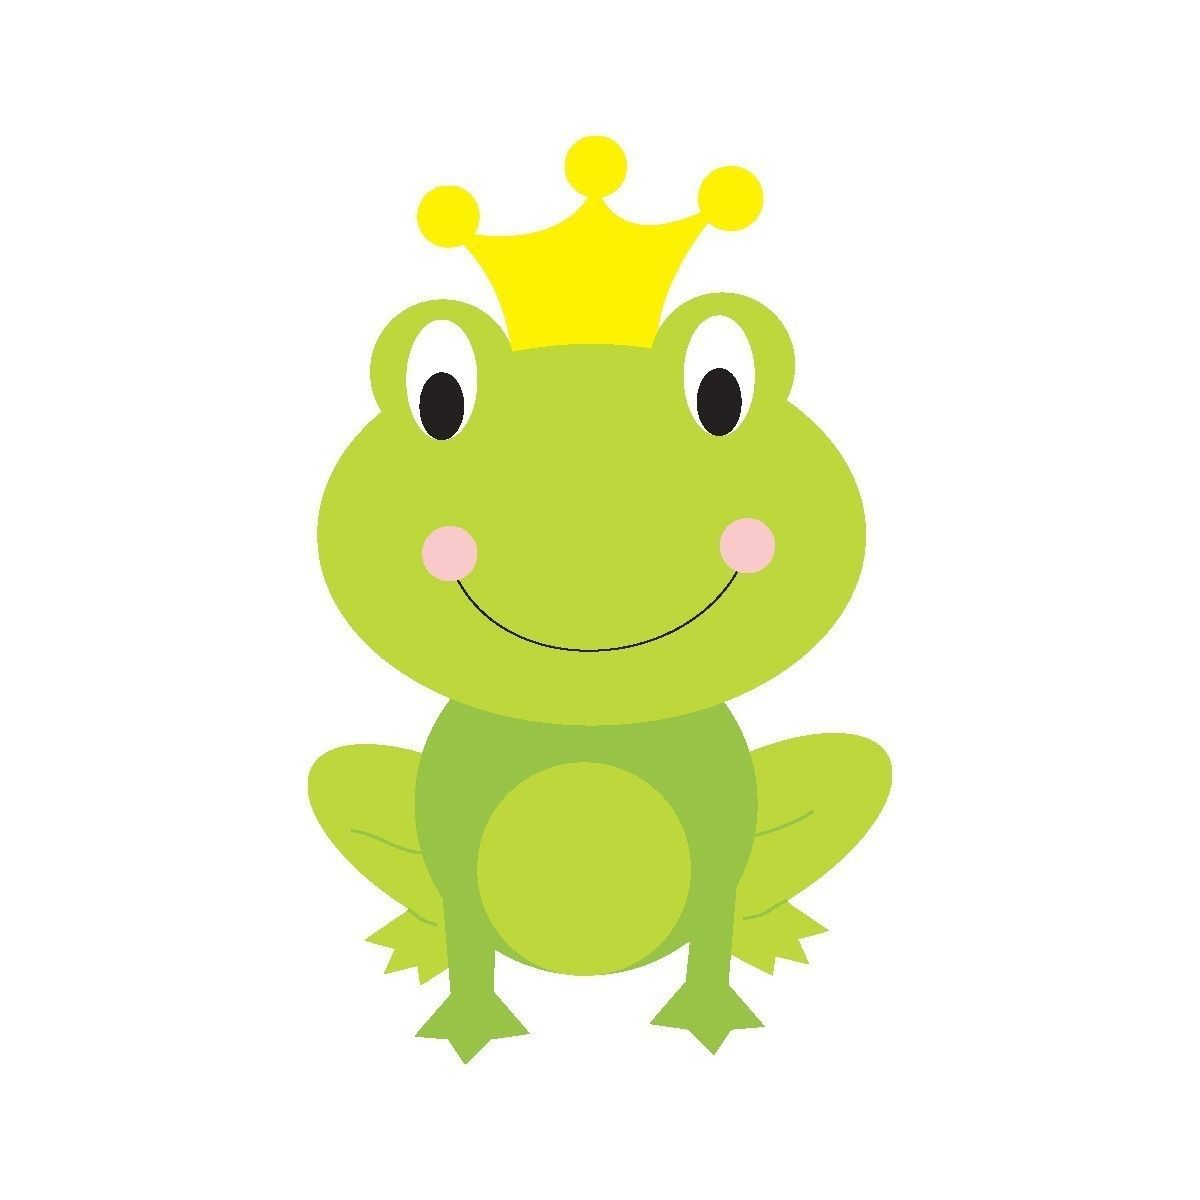 are you a frog or a prince frogs and birthdays rh pinterest com frog prince clipart black and white frog prince clipart